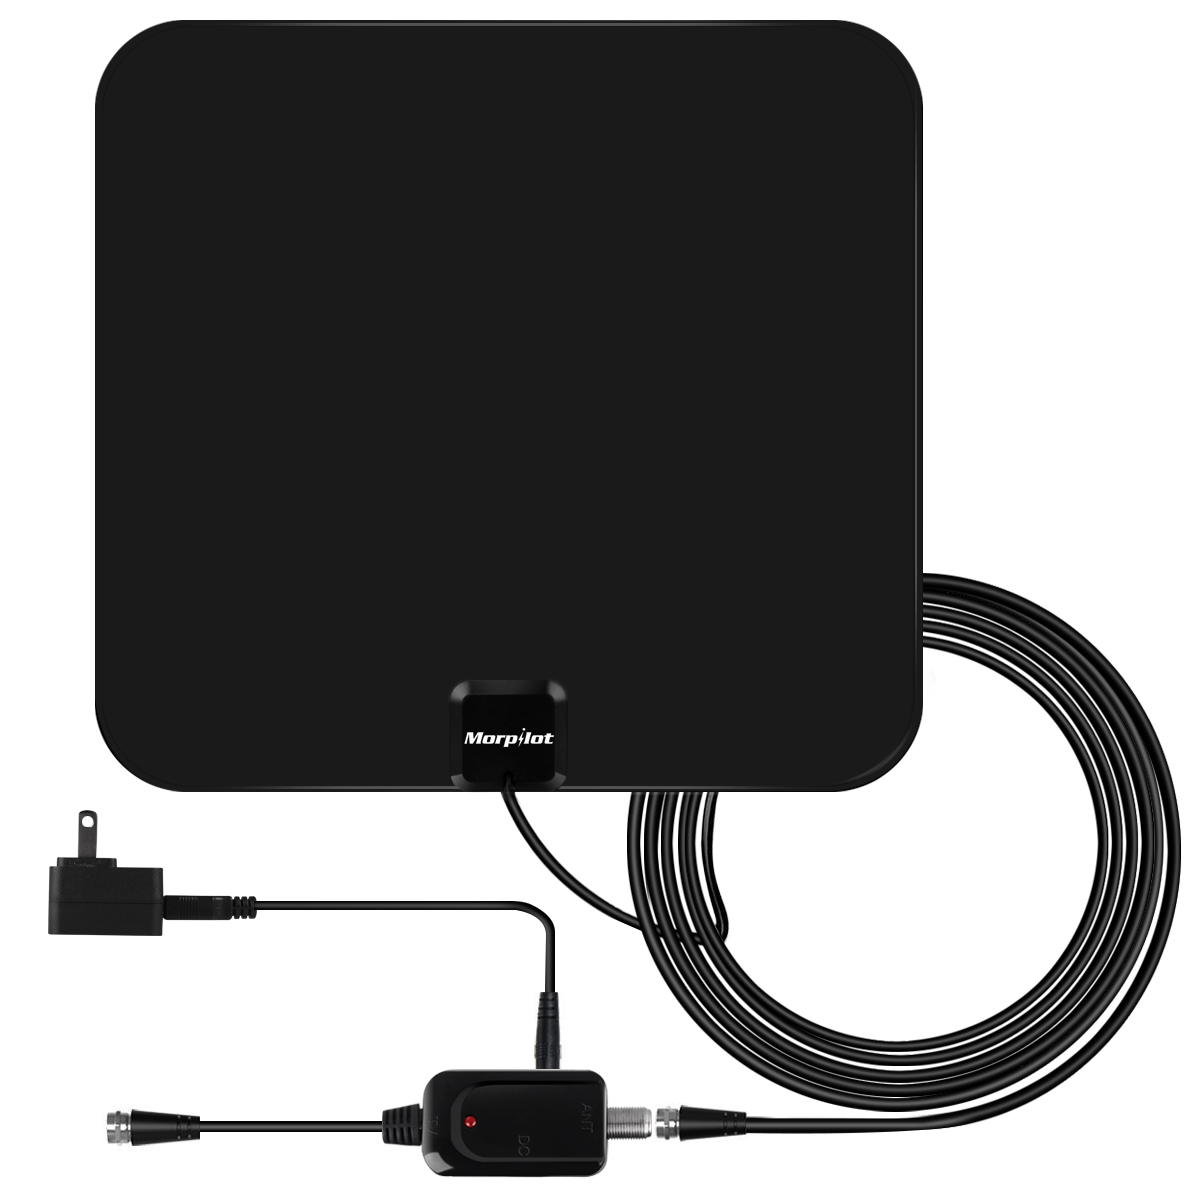 [NEWEST 2018] Amplified HD Digital TV Antenna with Long 65-80 Miles Range – Support 4K 1080p & All Older TV's for Indoor with Powerful HDTV Amplifier Signal Booster - 12ft Coax Cable / Power Adapter